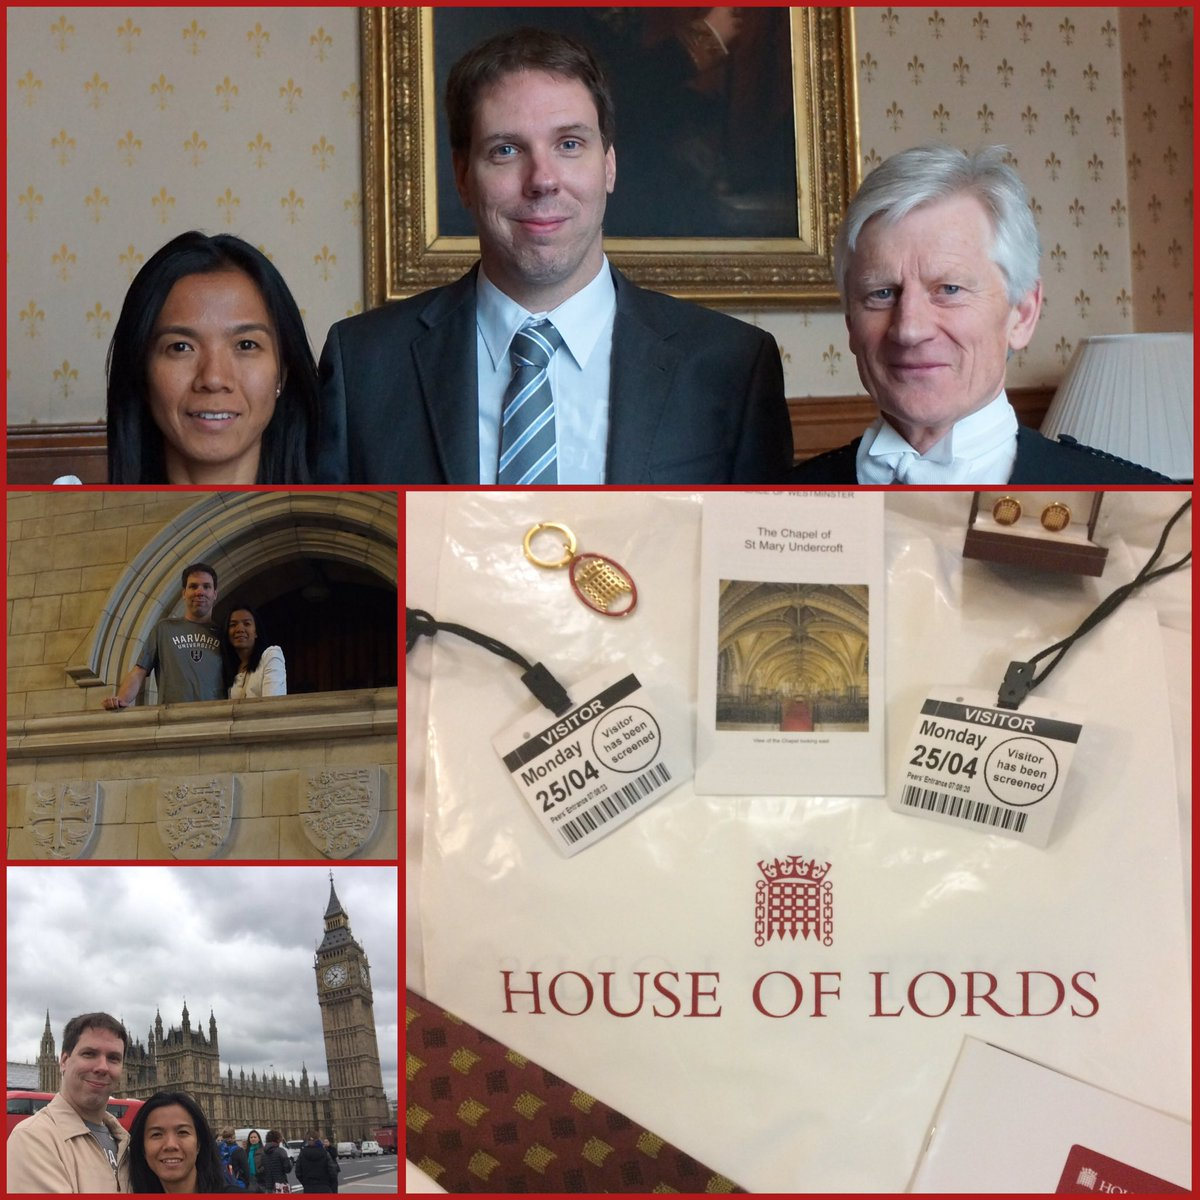 Great lunch with David Leakey (Black Rod) at the House of Lords followed by a session with members of the lords. https://t.co/Zlembq8XeB